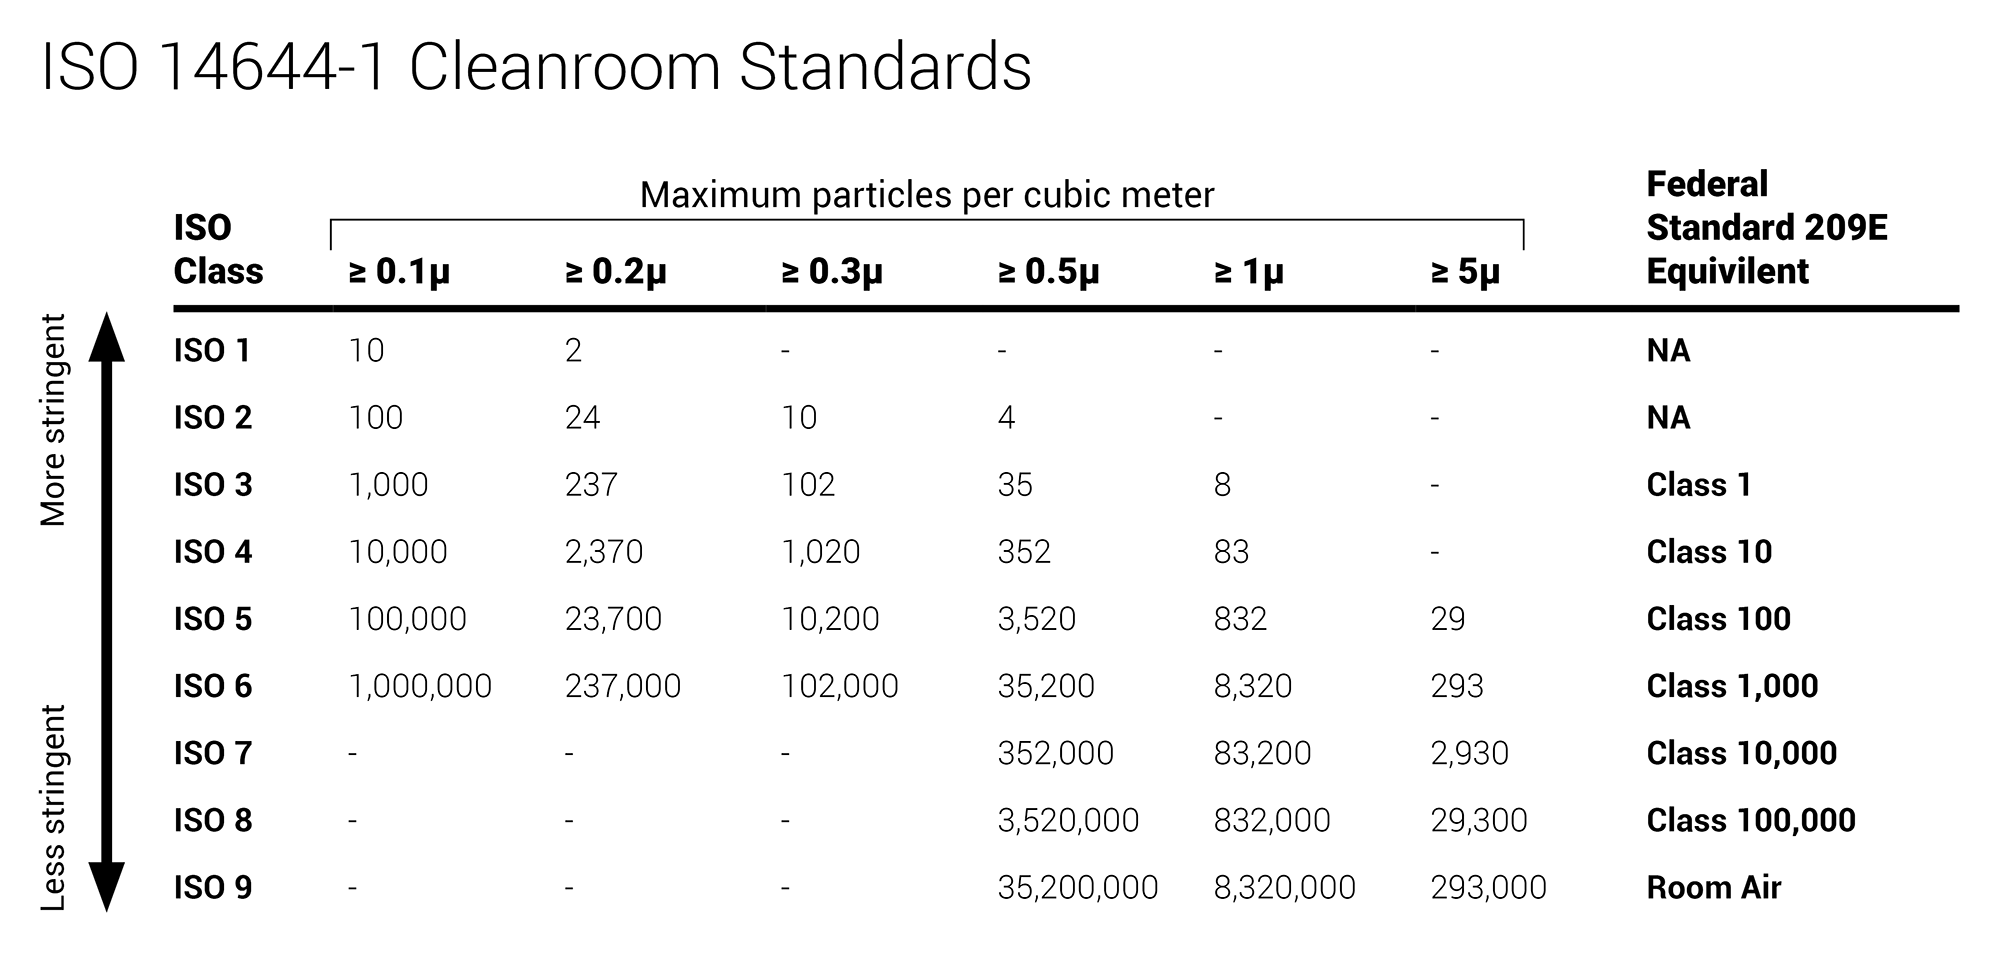 ISO 14644-1 Cleanroom Standards